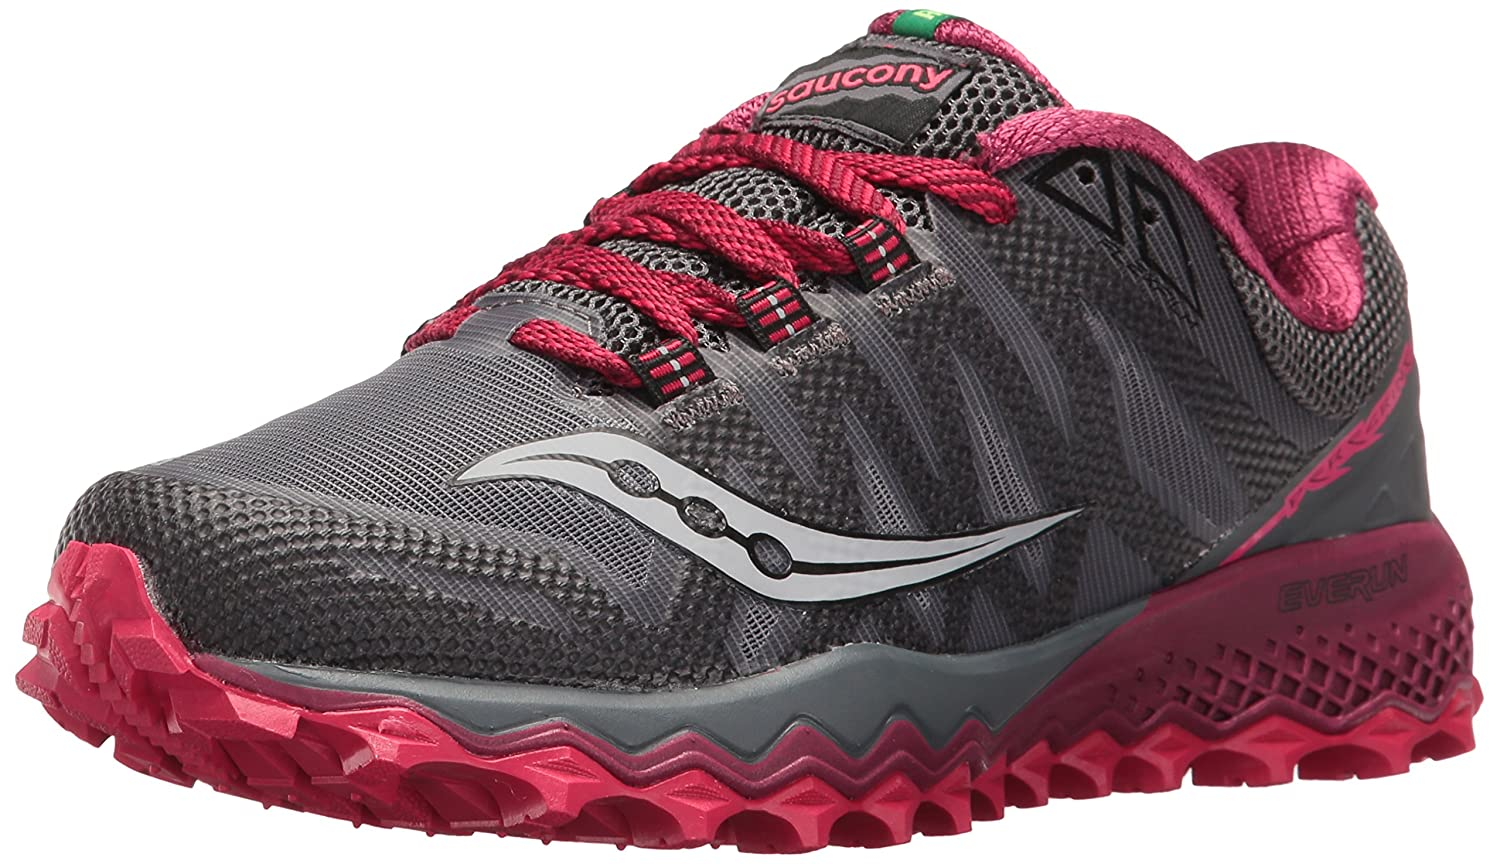 Grey Berry Saucony Women's Peregrine 7 Running shoes